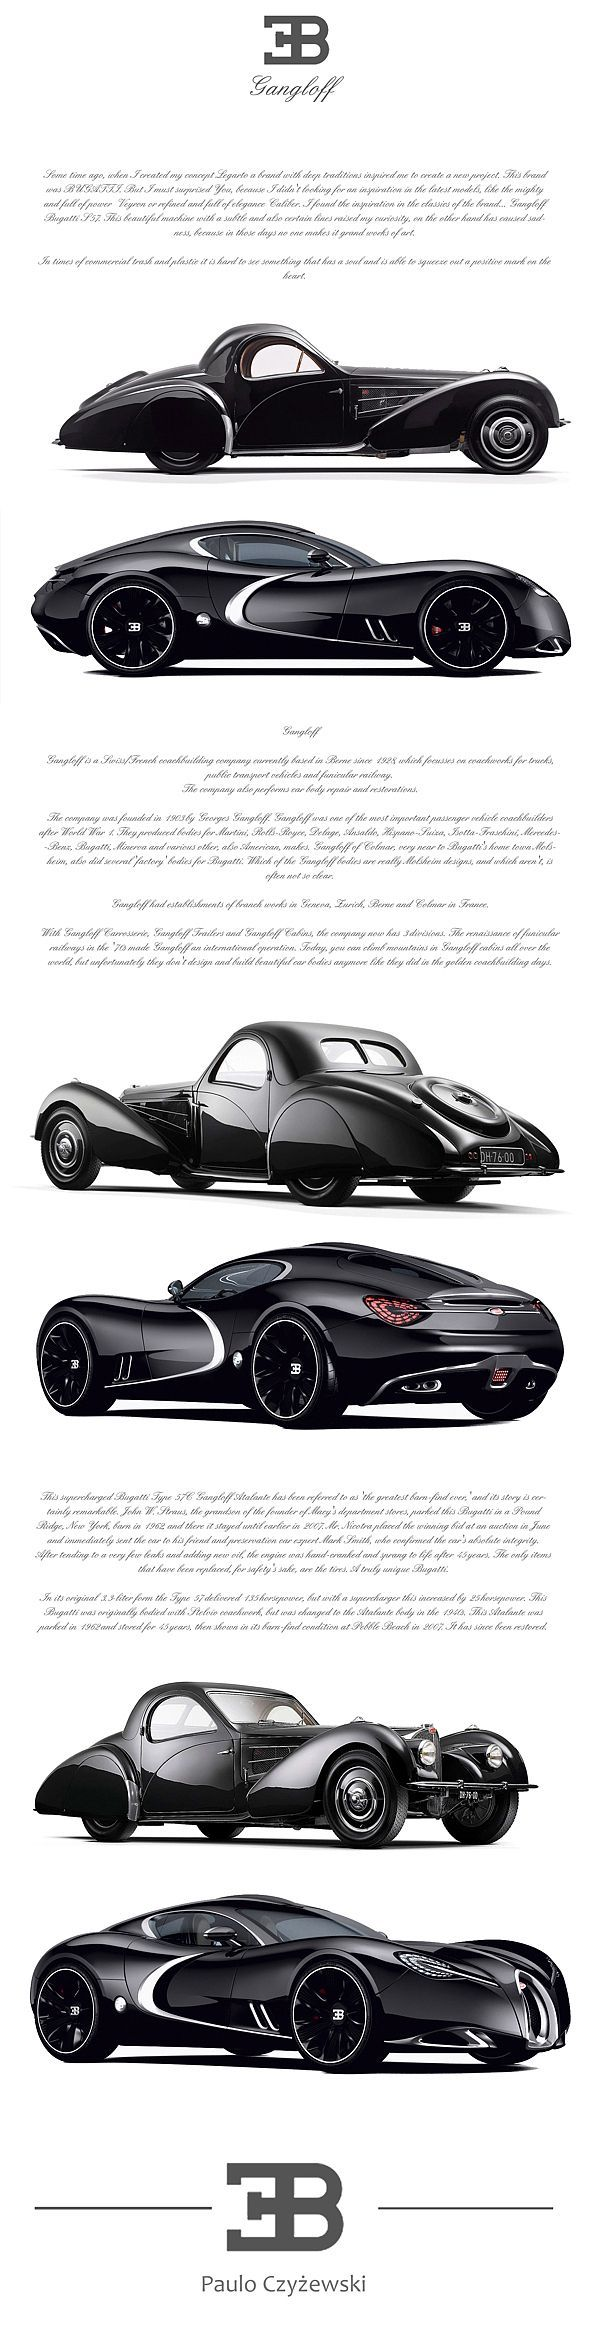 BUGATTI GANGLOFF CONCEPT CAR , INVISIUM By Paweł Czyżewski. My Dream, As A  Future Engineer, Is To Work For High End Exotic Automobile Companies And  Design ...